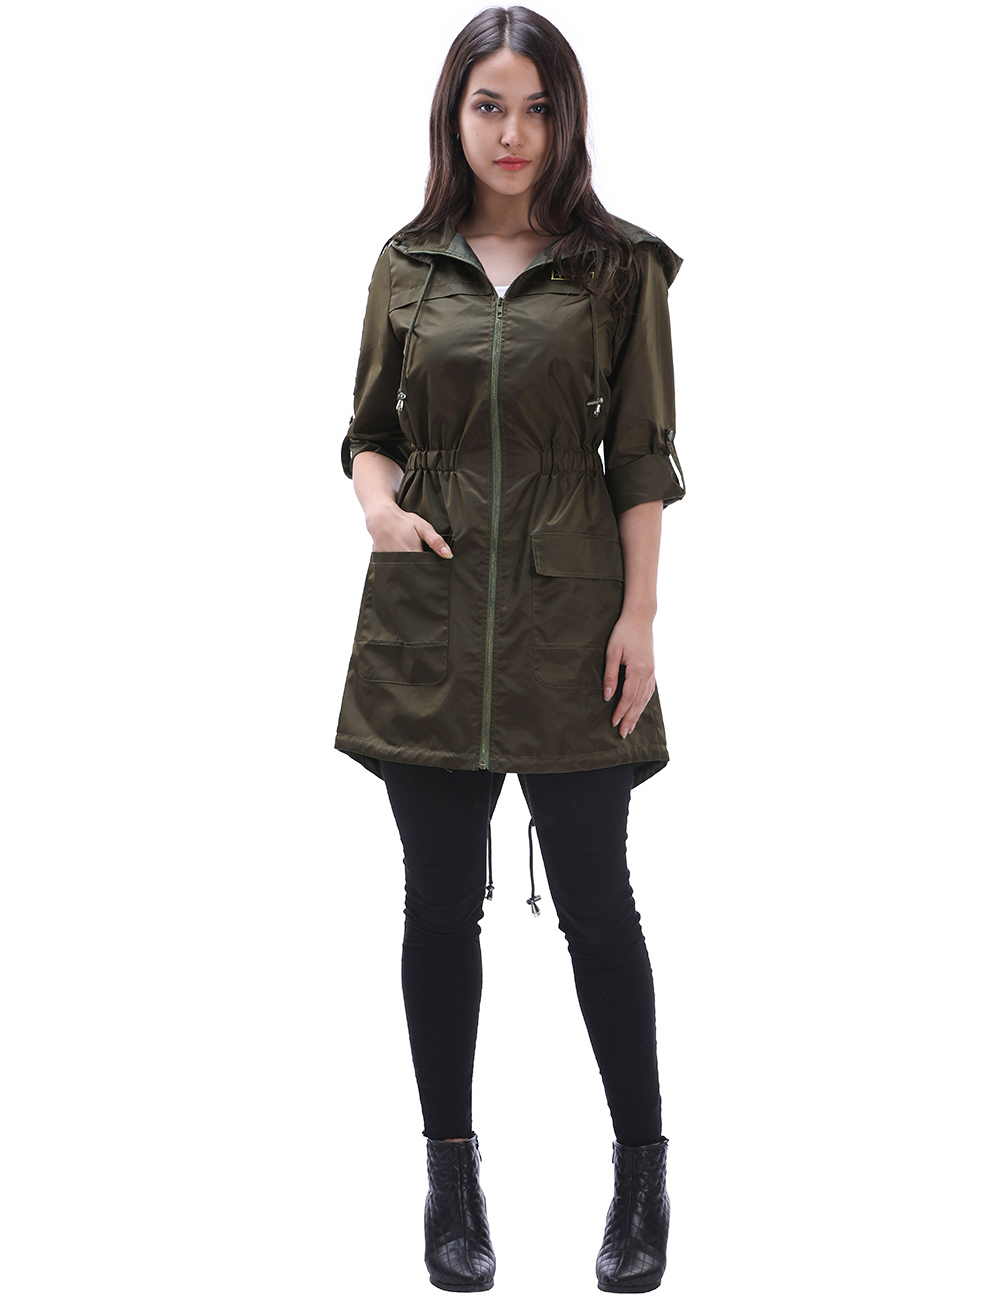 Big code  style Coat Women Slim Cotton Casual Long Coat with  Adjustable Waist Zippers Overcoat fashion